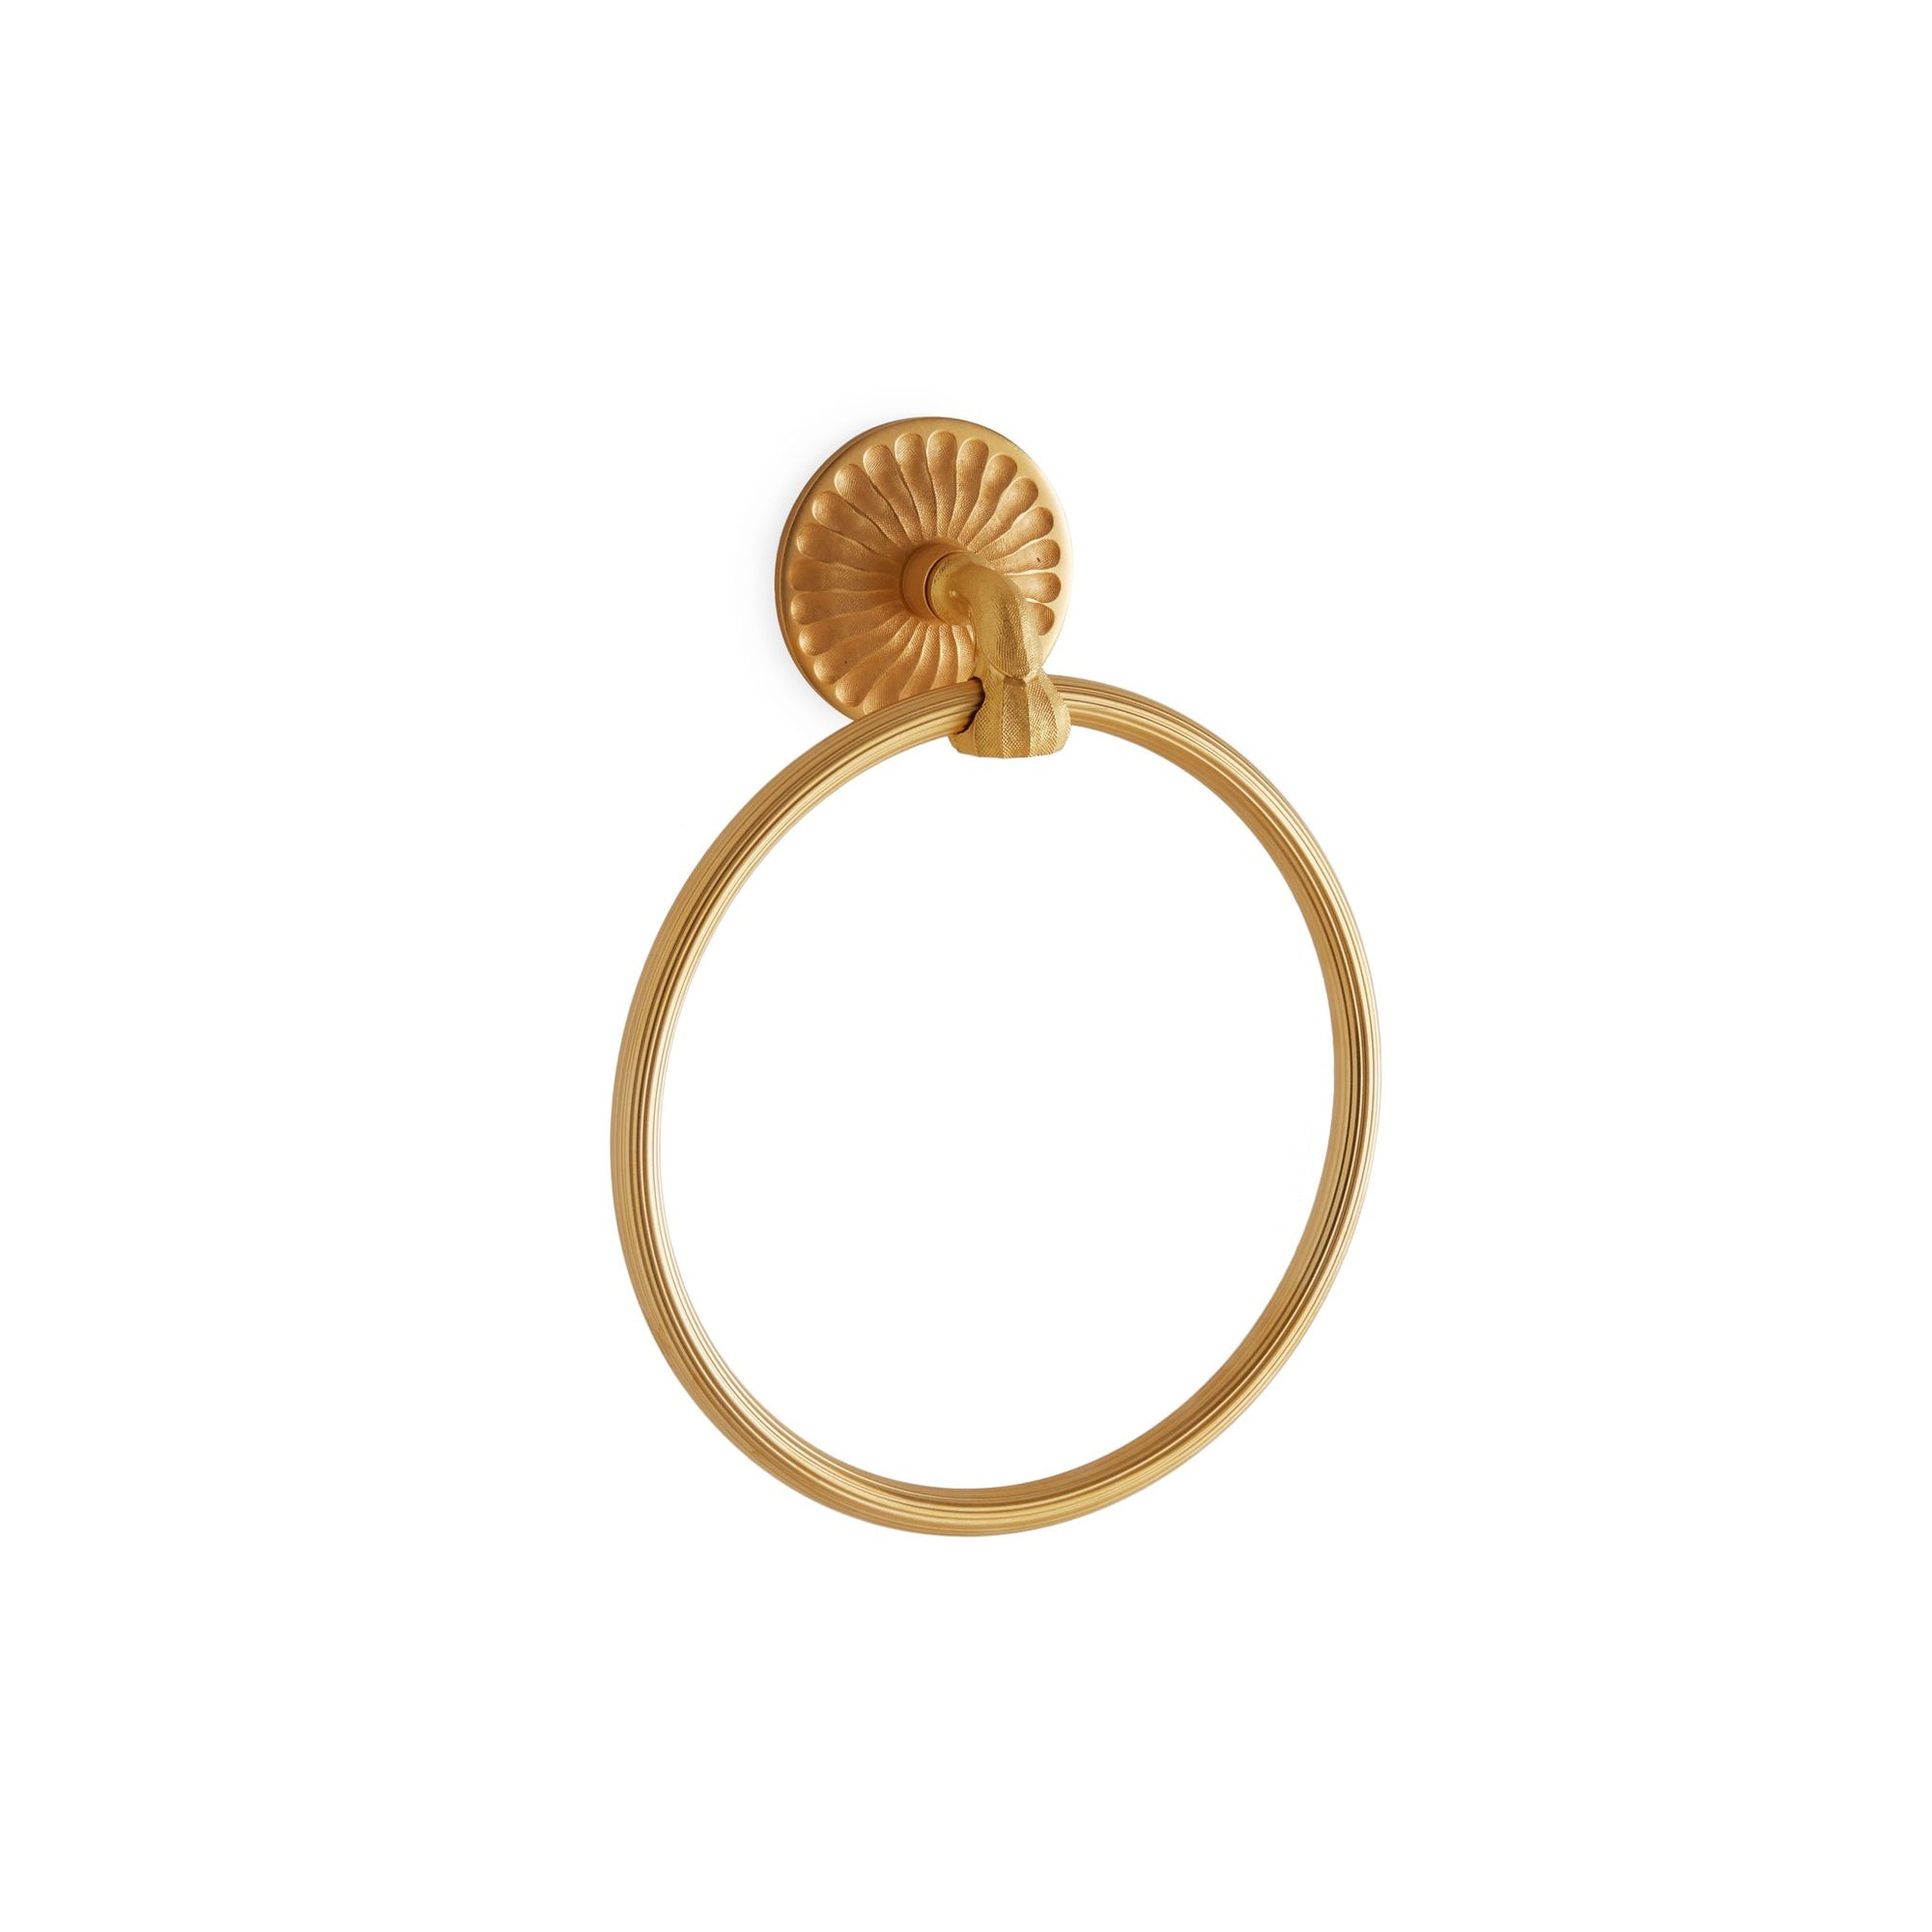 3445-GP Sherle Wagner International Scandia Towel Ring in Gold Plate metal finish